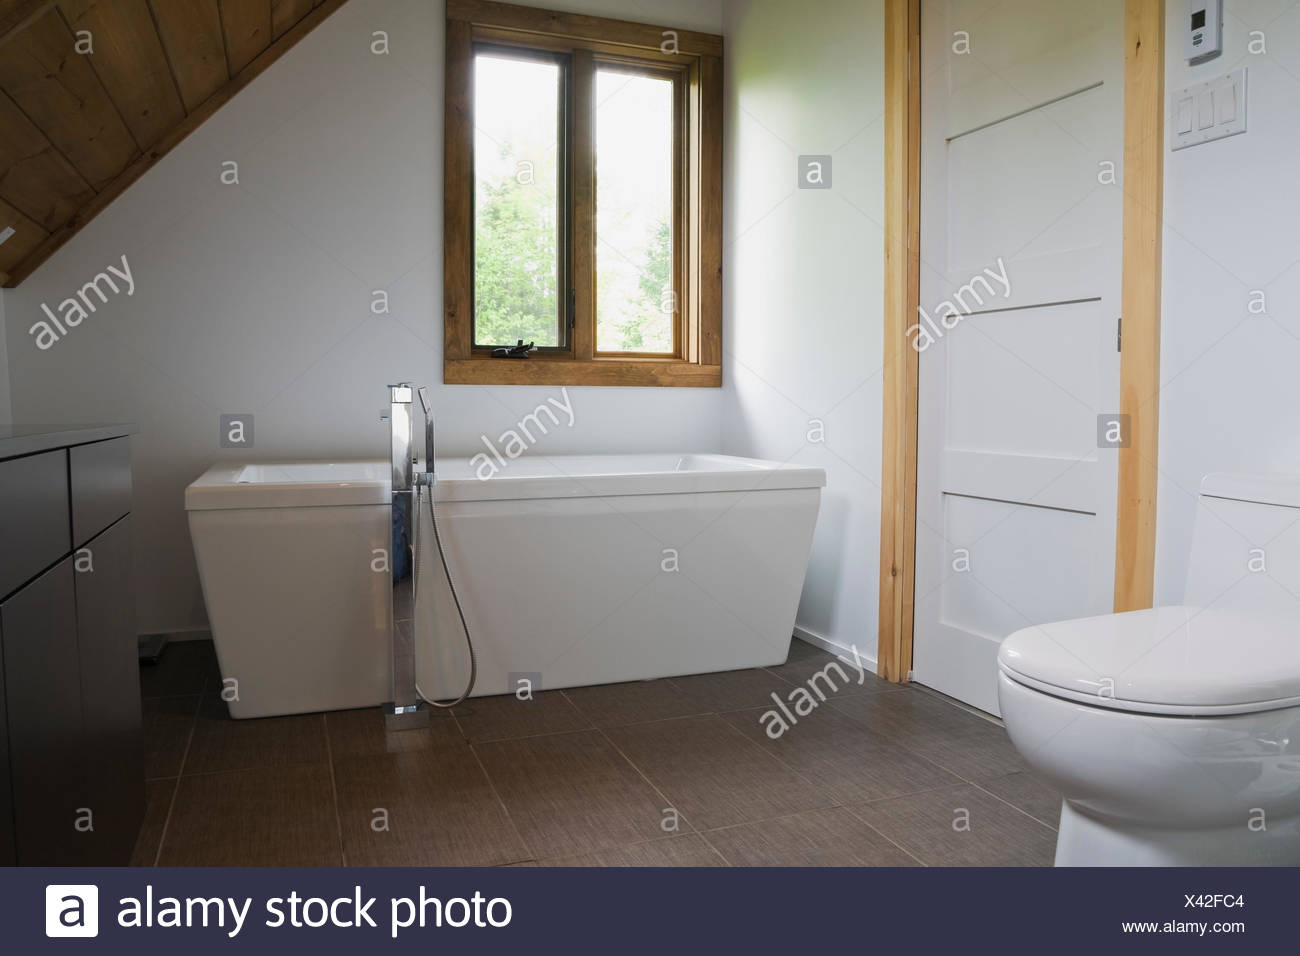 Bathroom with grey ceramic tile floor, white porcelain toilet and ...